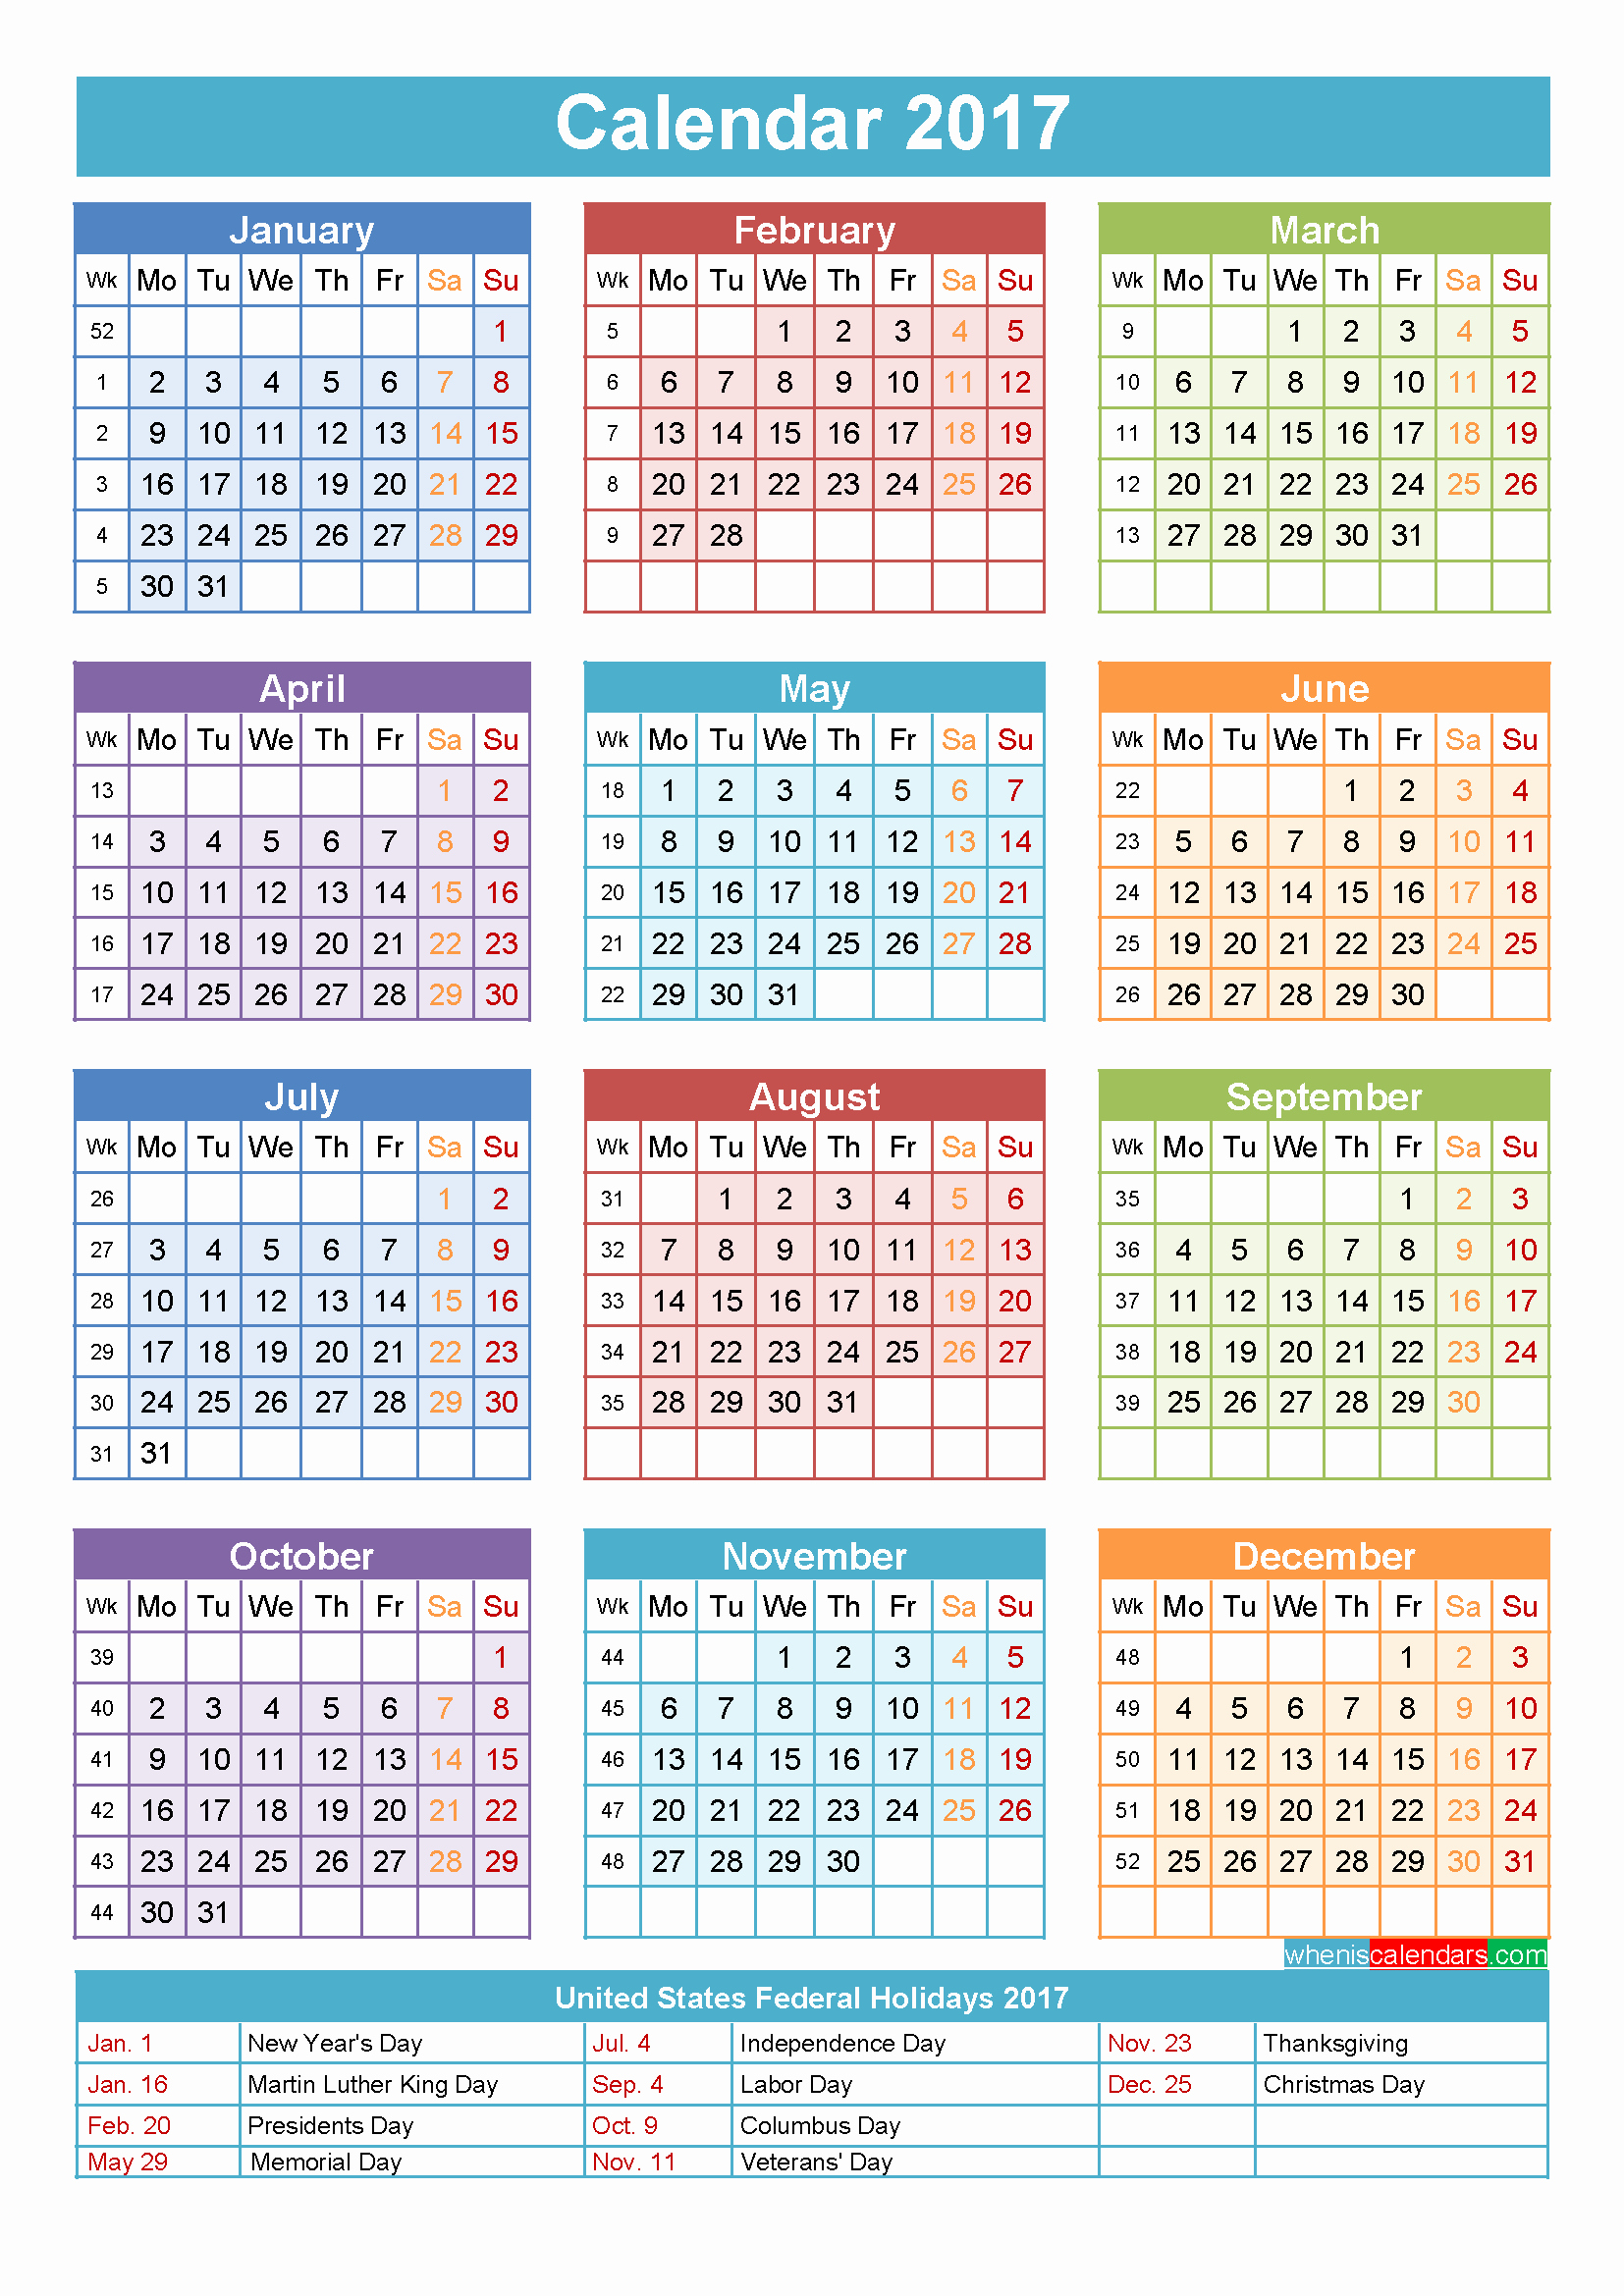 Free Printable Annual Calendar 2017 Best Of Free Printable 2017 Yearly Calendar with Holidays